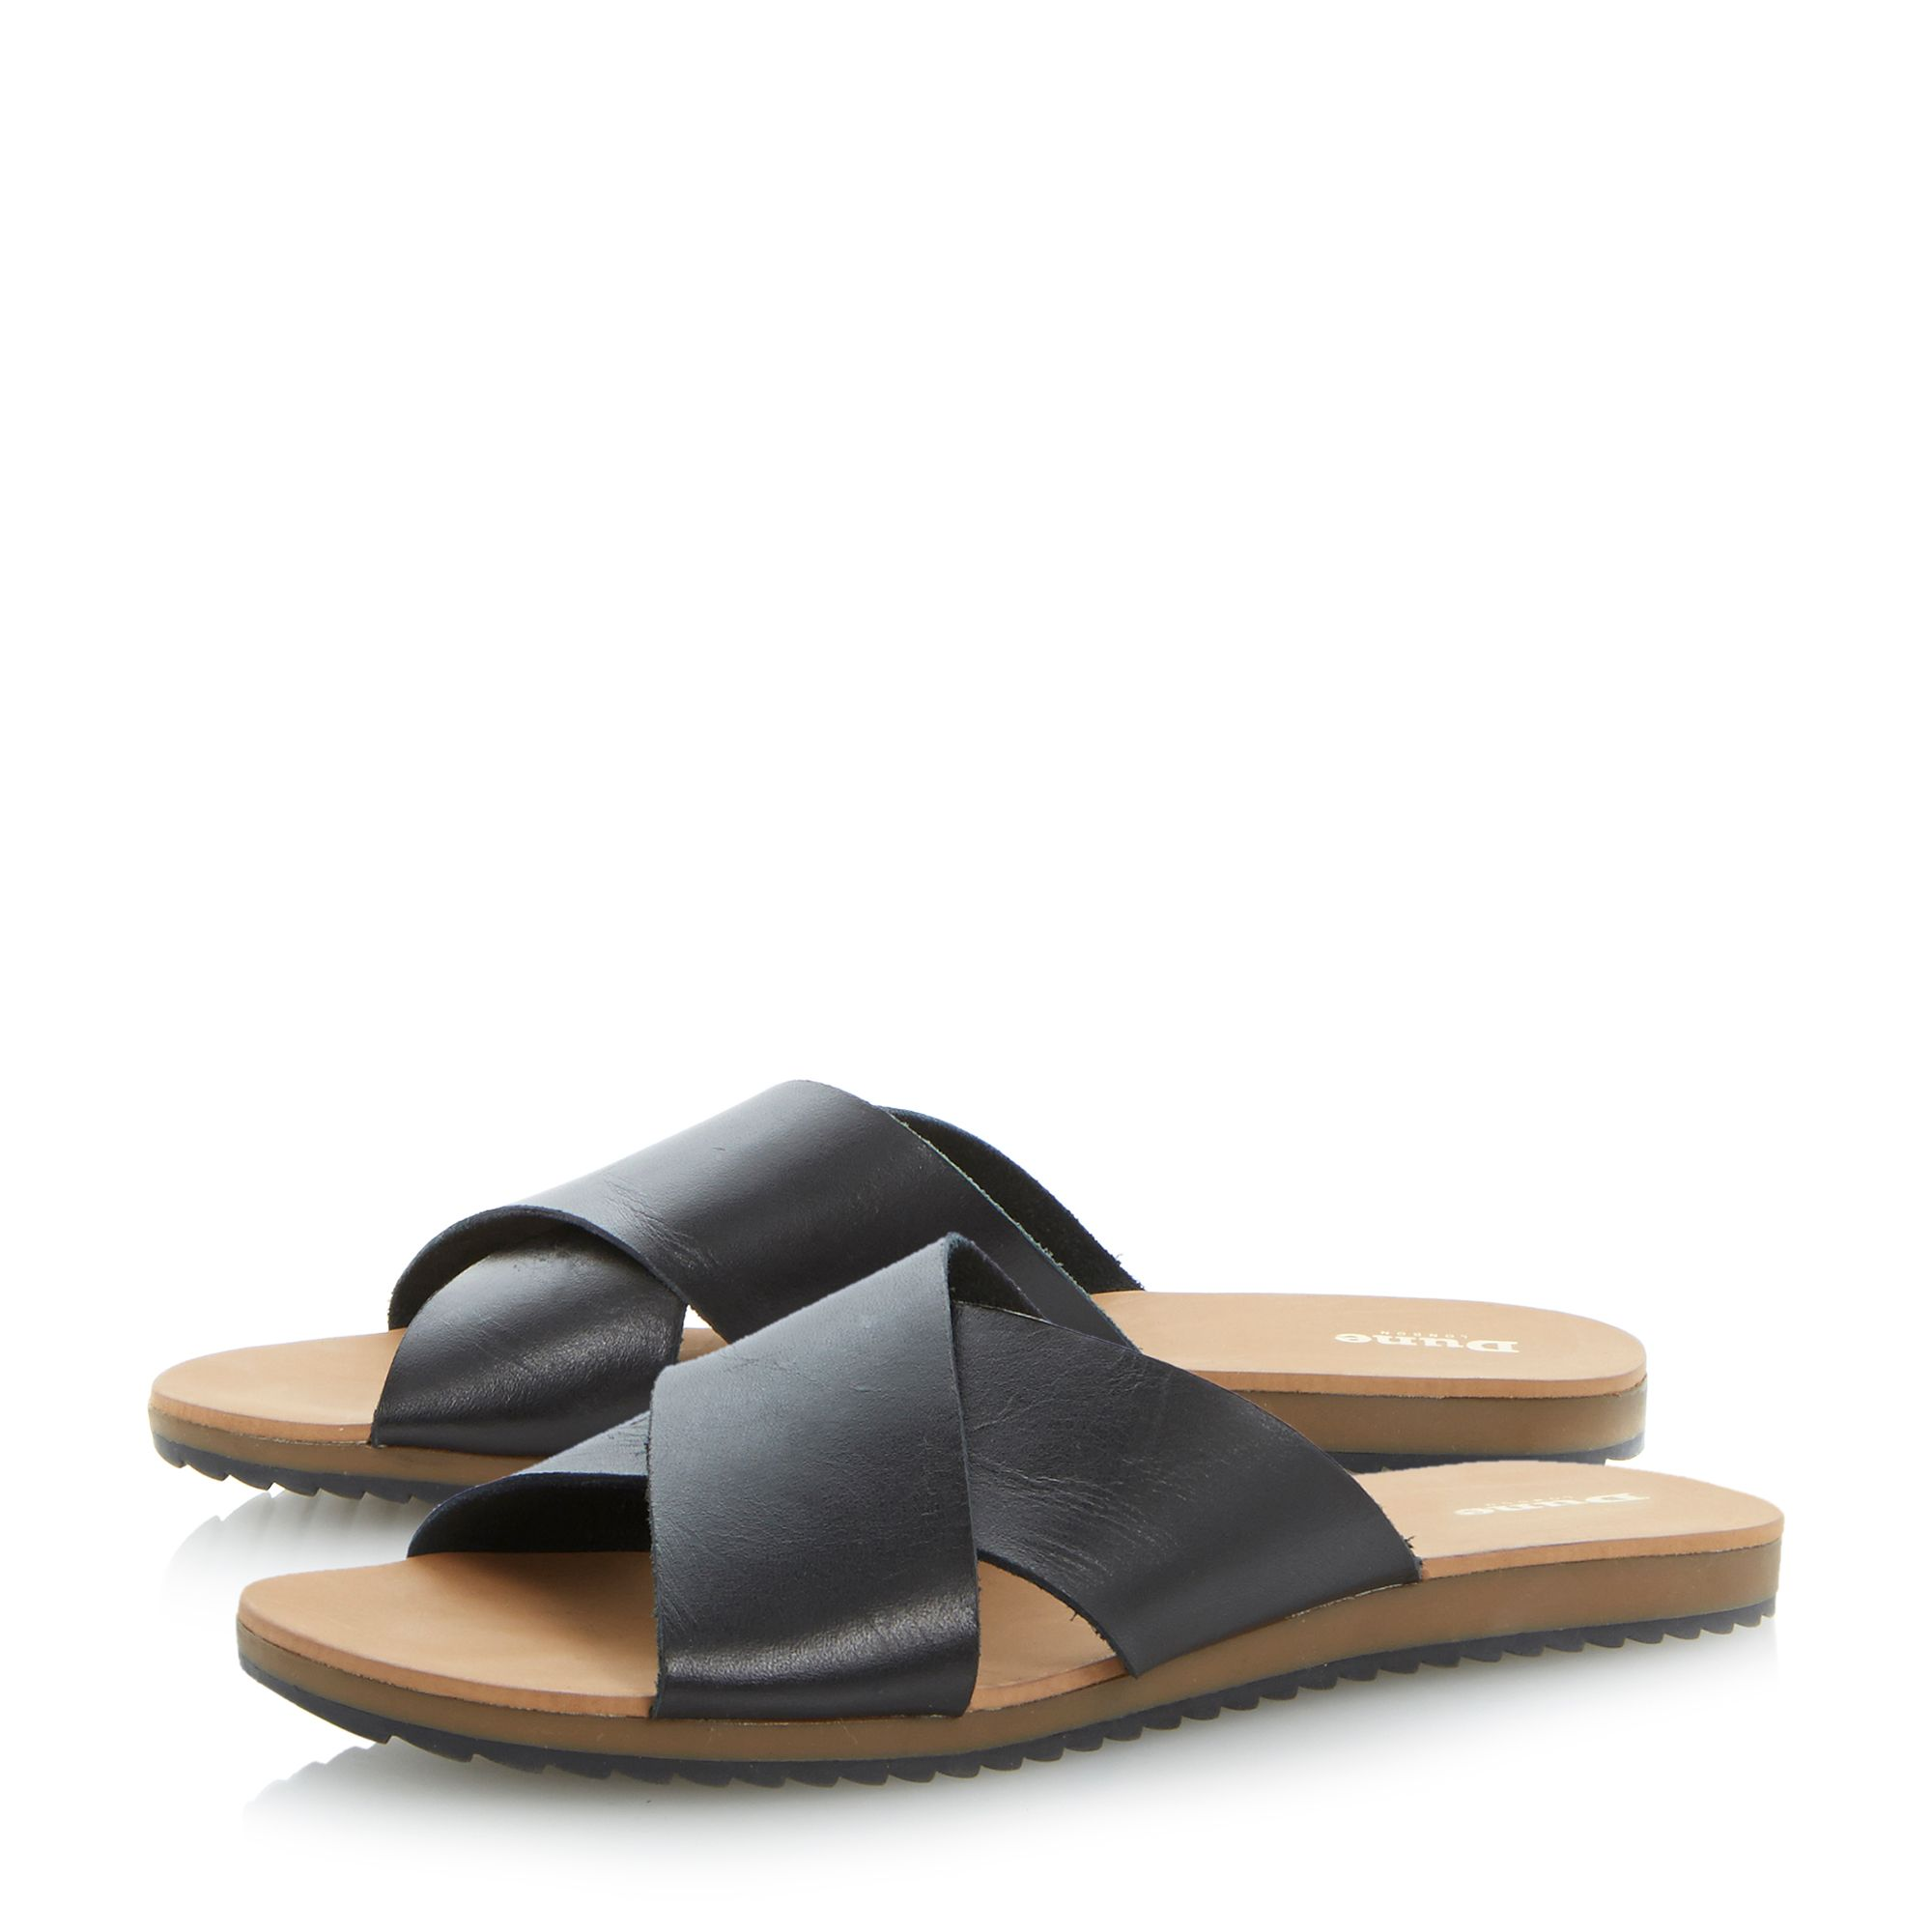 Jaiden cross strap sliders